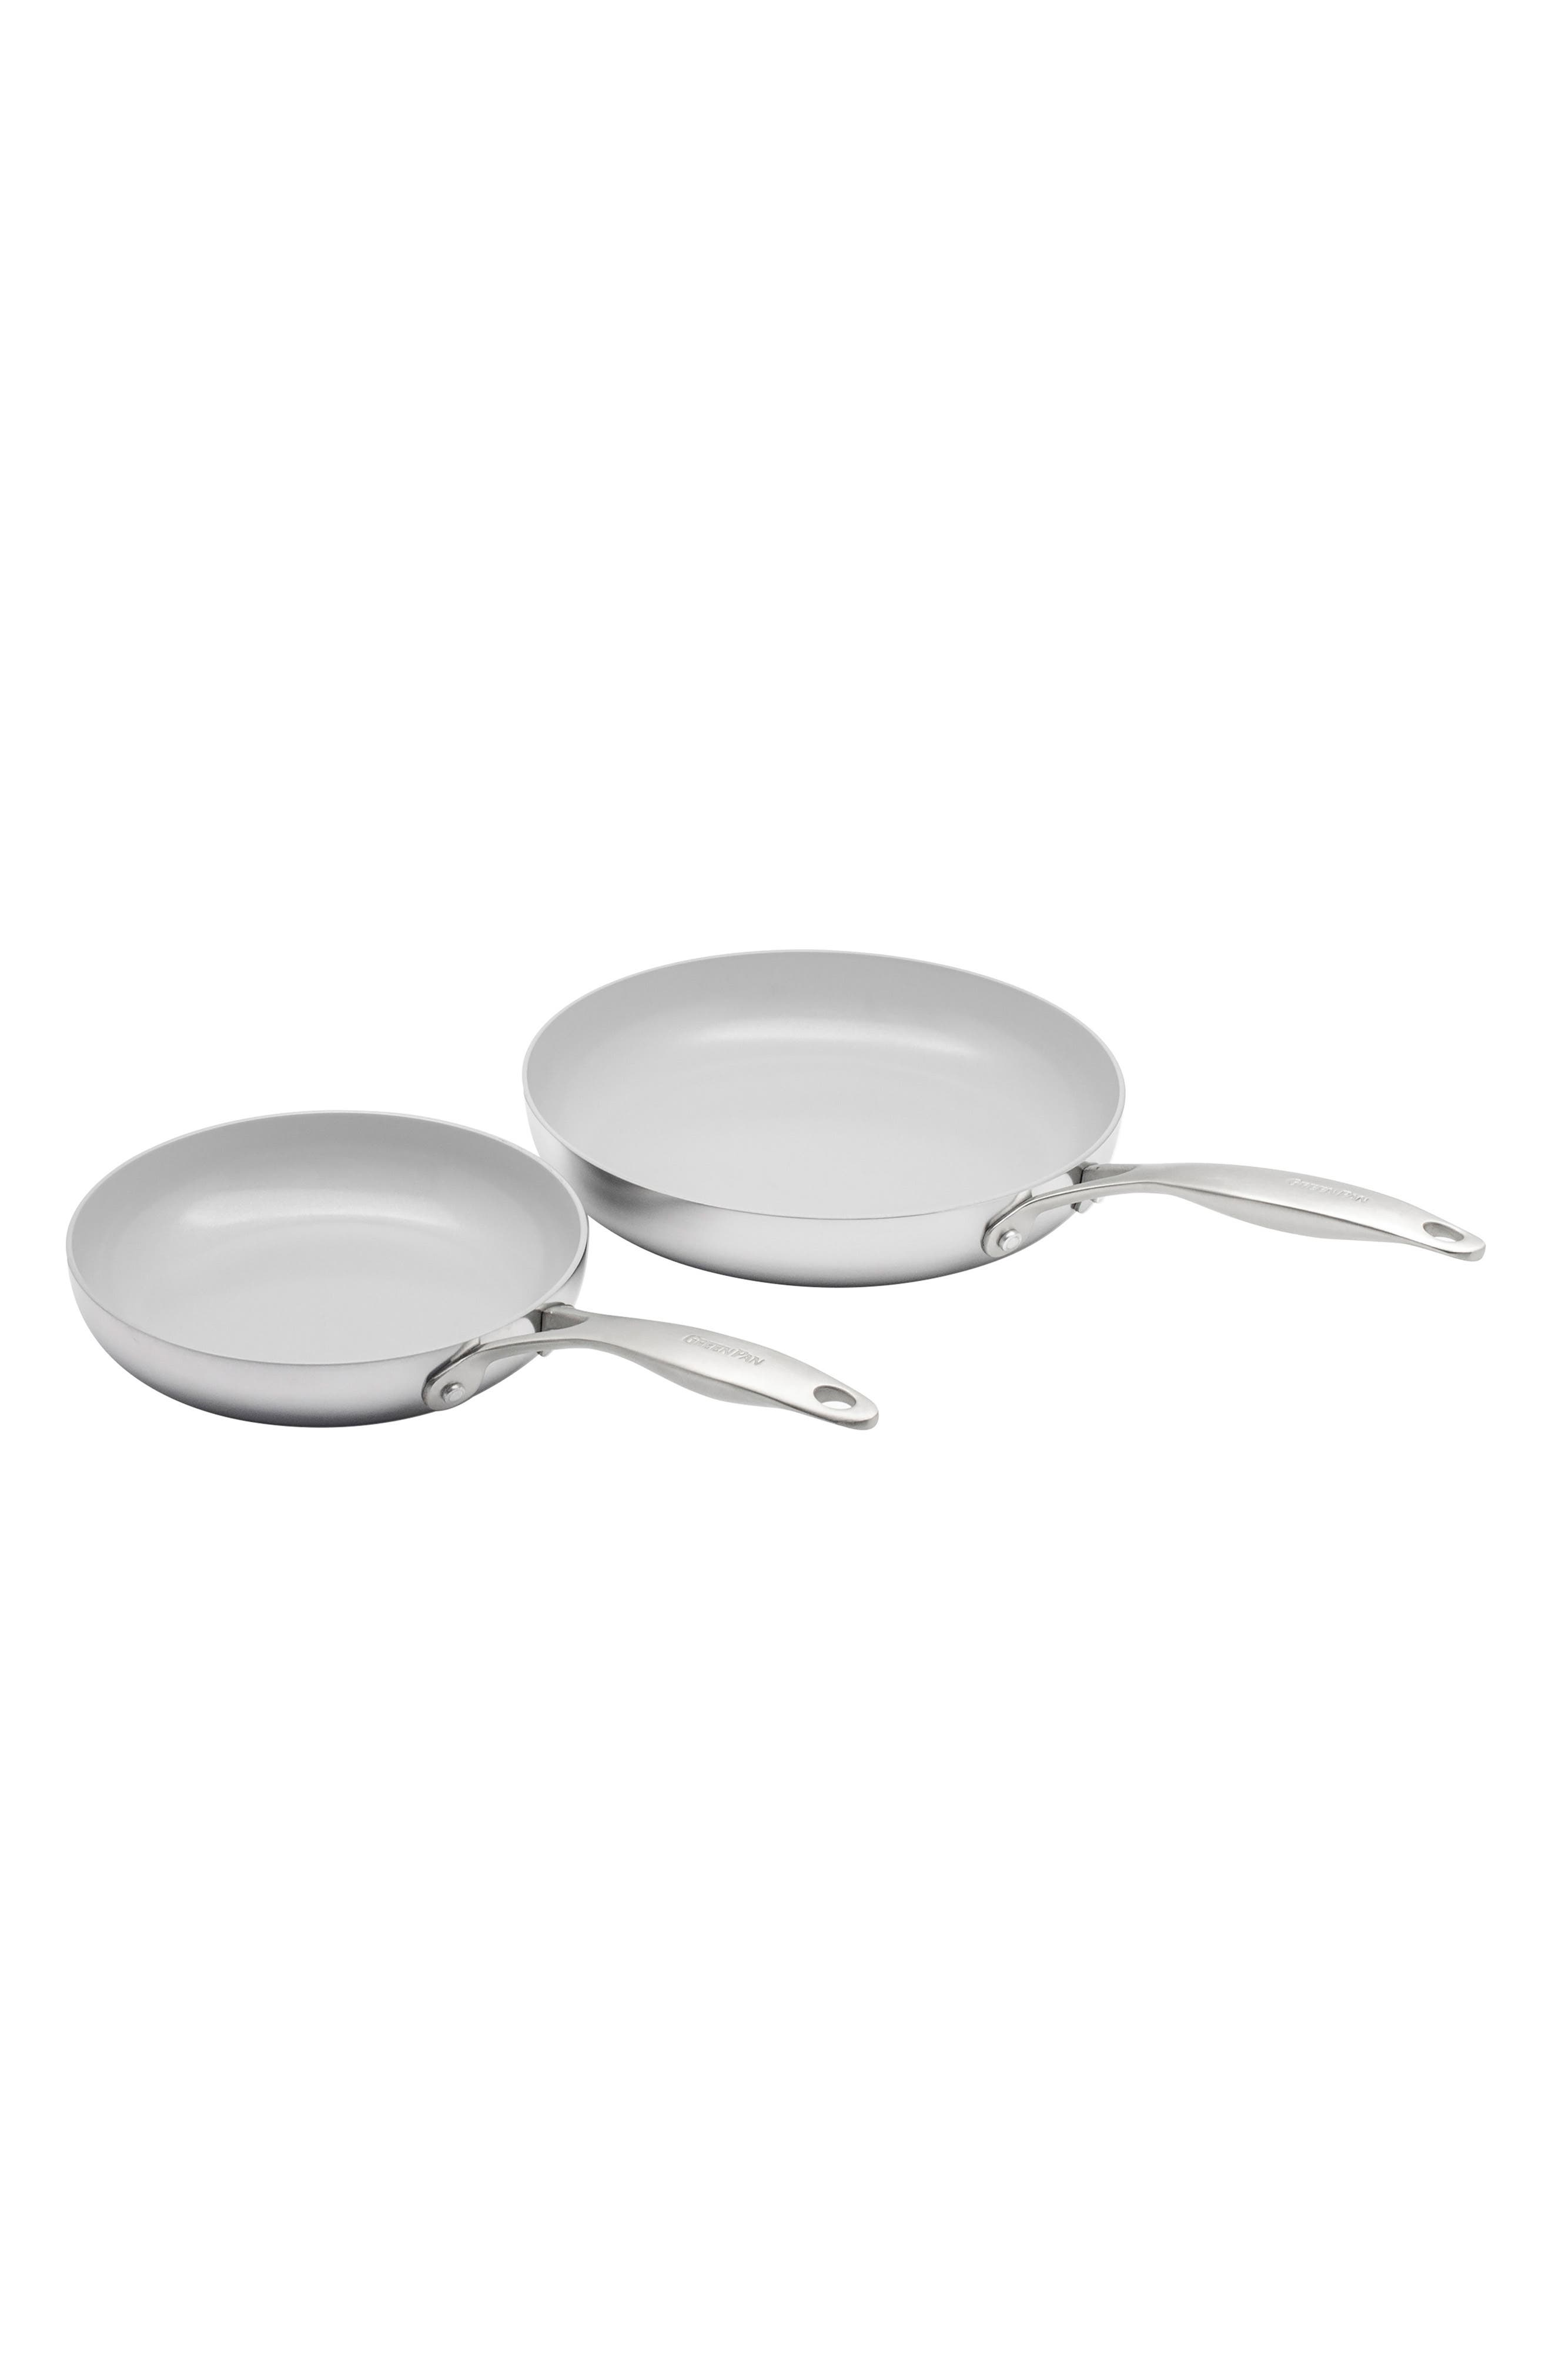 GREENPAN Venice Pro 8-Inch & 10-Inch Multilayer Stainless Steel Ceramic Nonstick Frying Pan Set, Main, color, STAINLESS STEEL